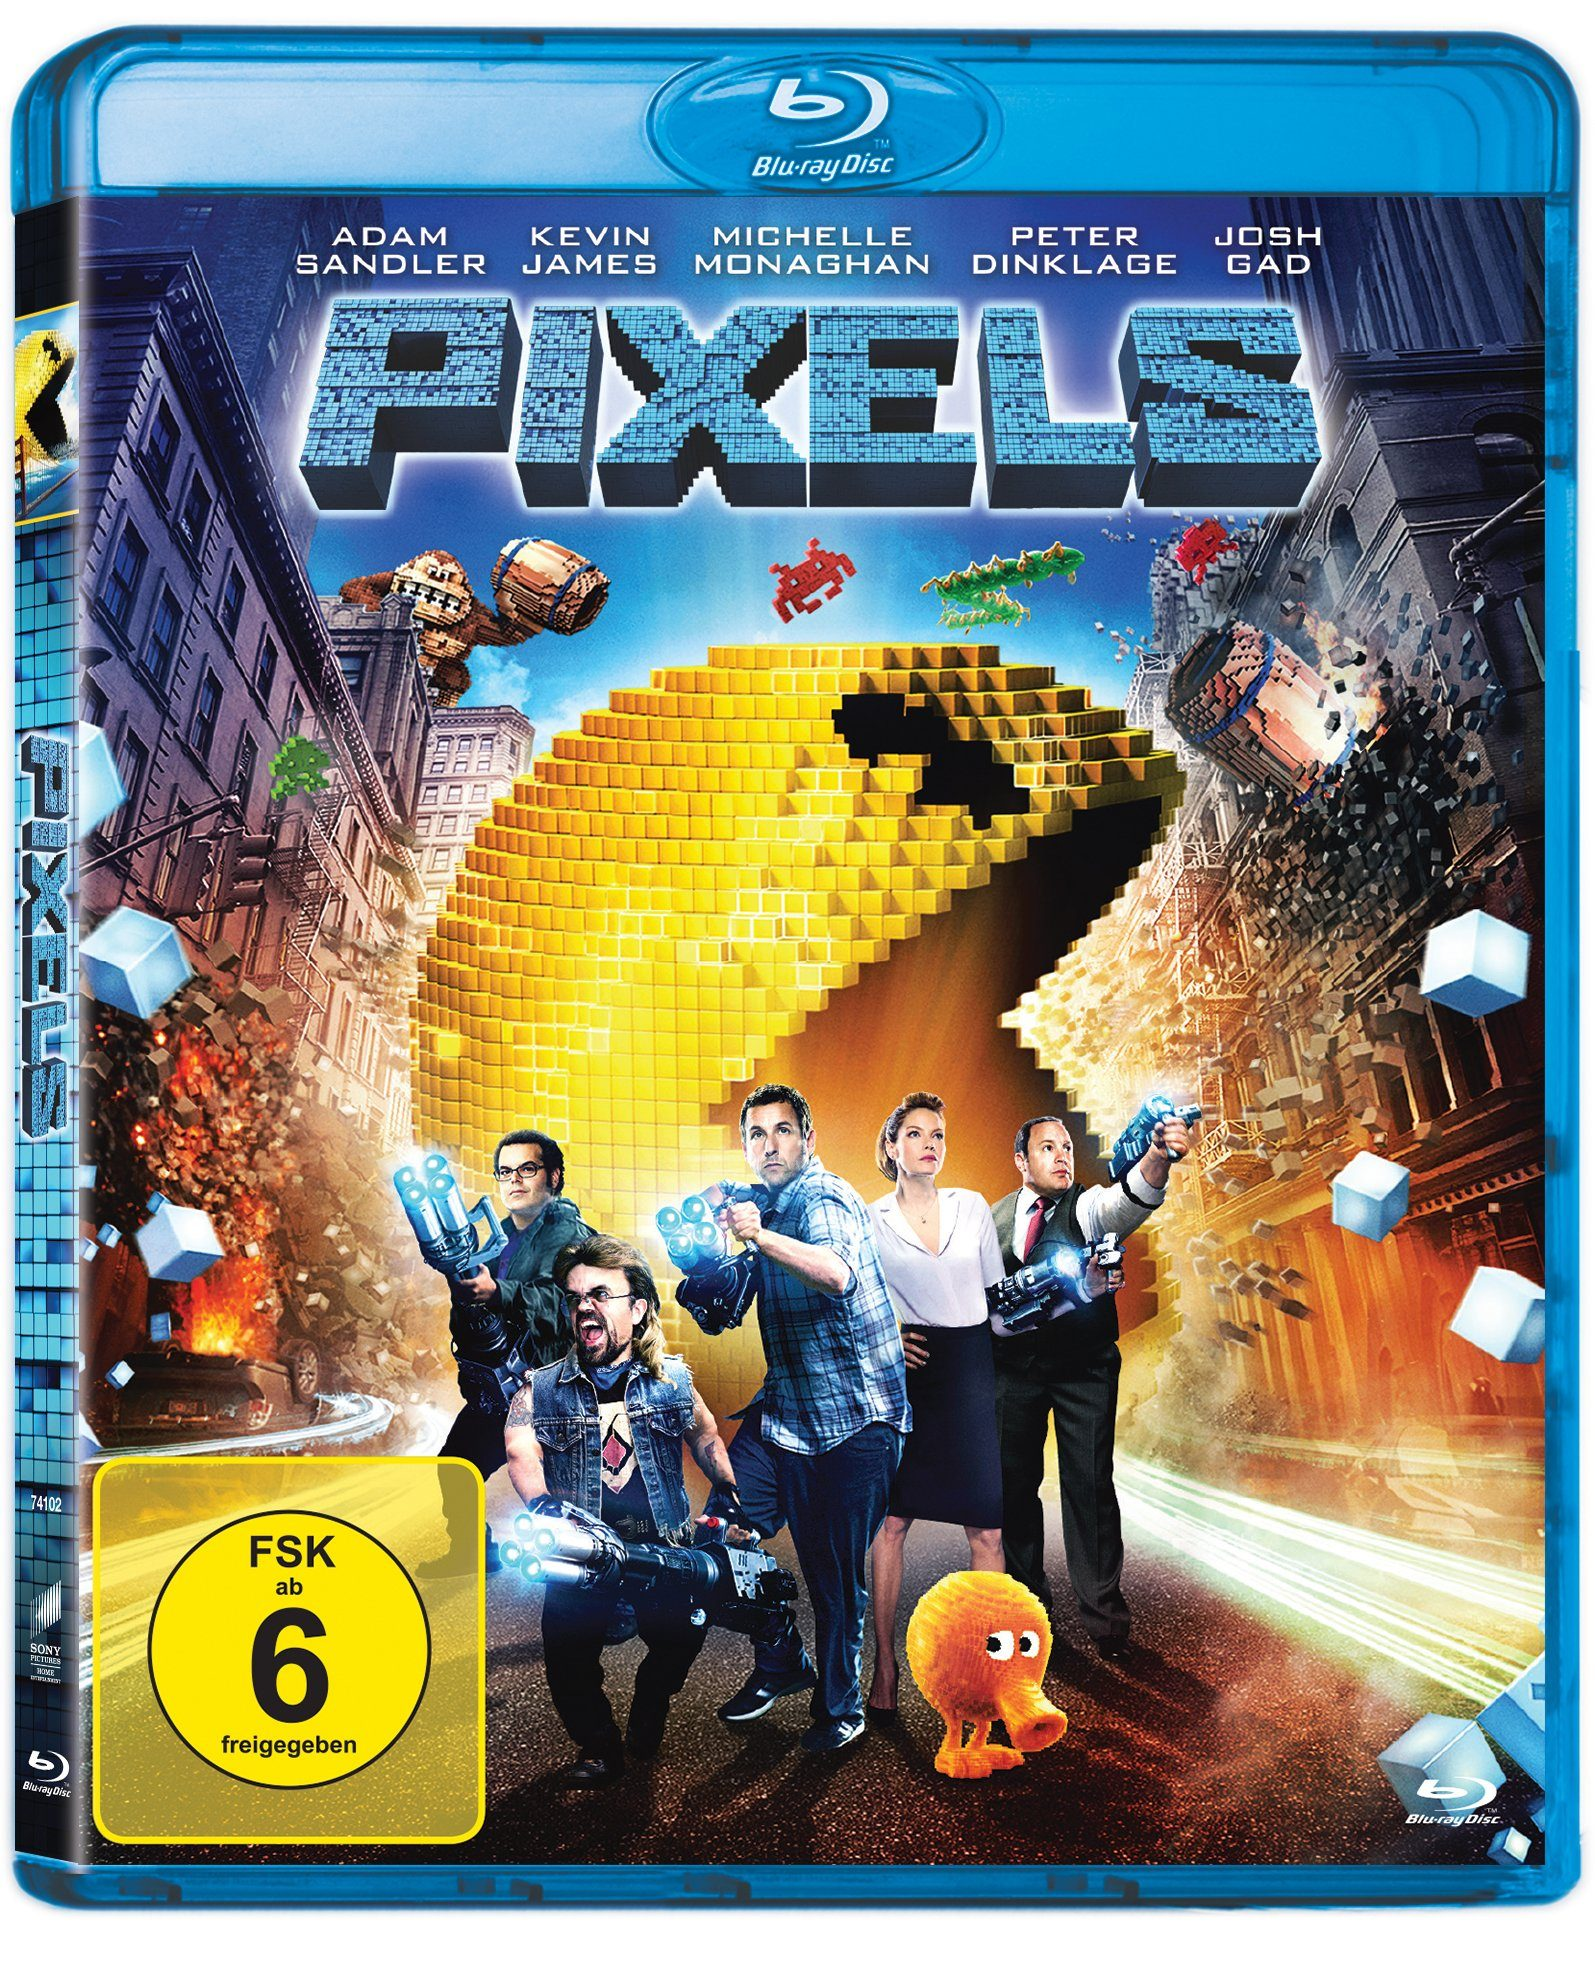 Sony Pictures Blu-ray »Pixels«